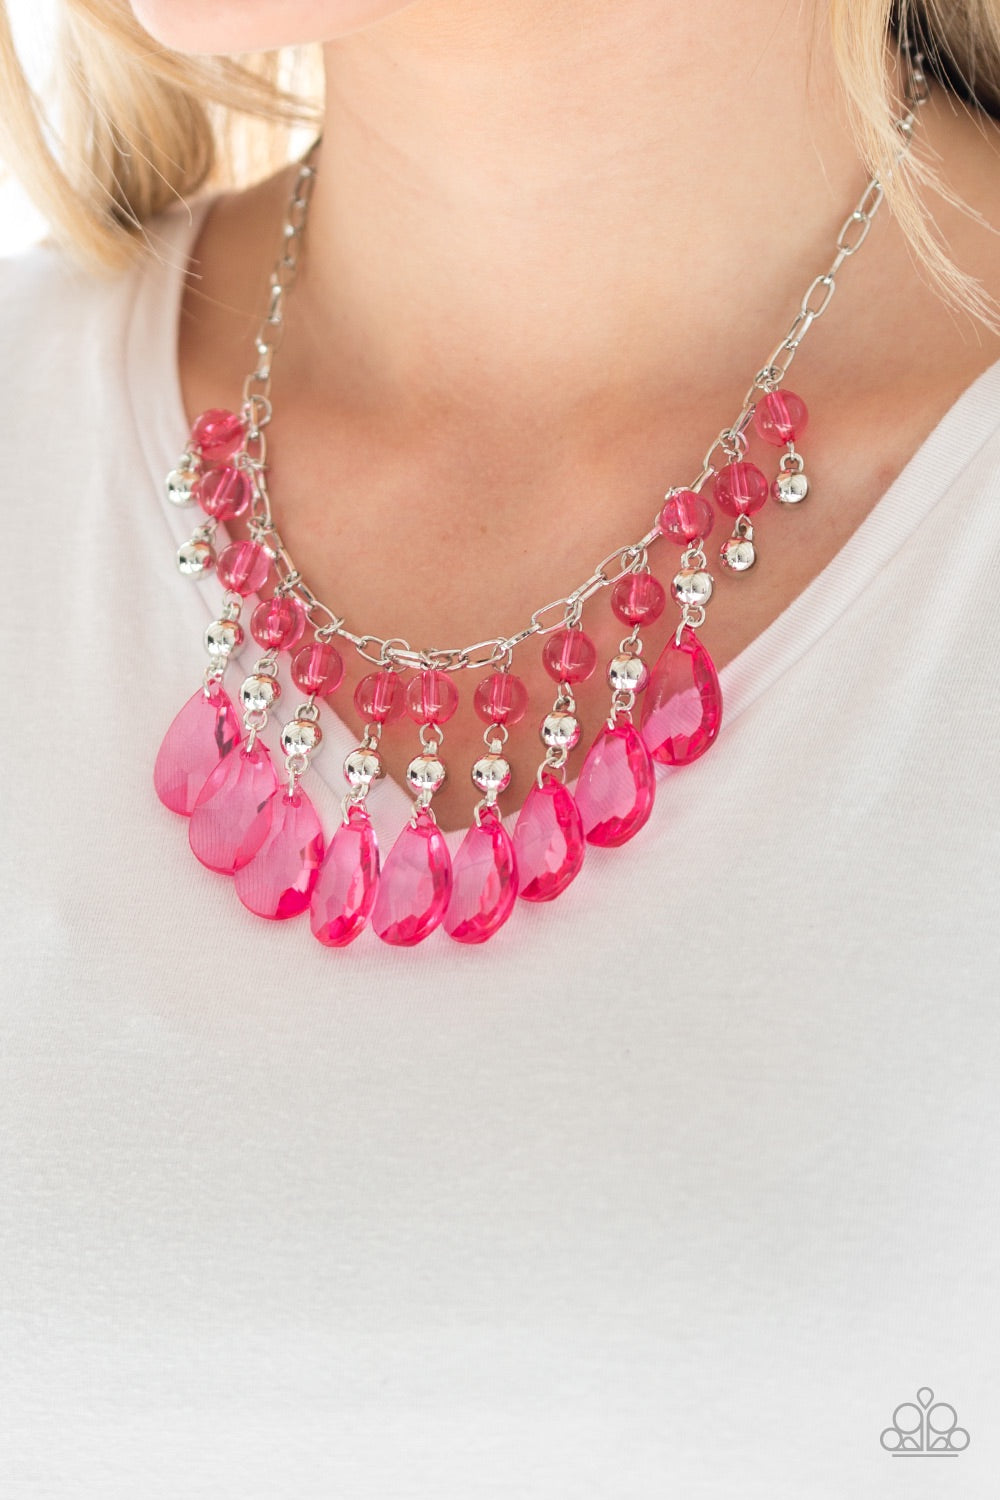 Paparazzi Jewelry Necklace Beauty School Drop Out - Pink